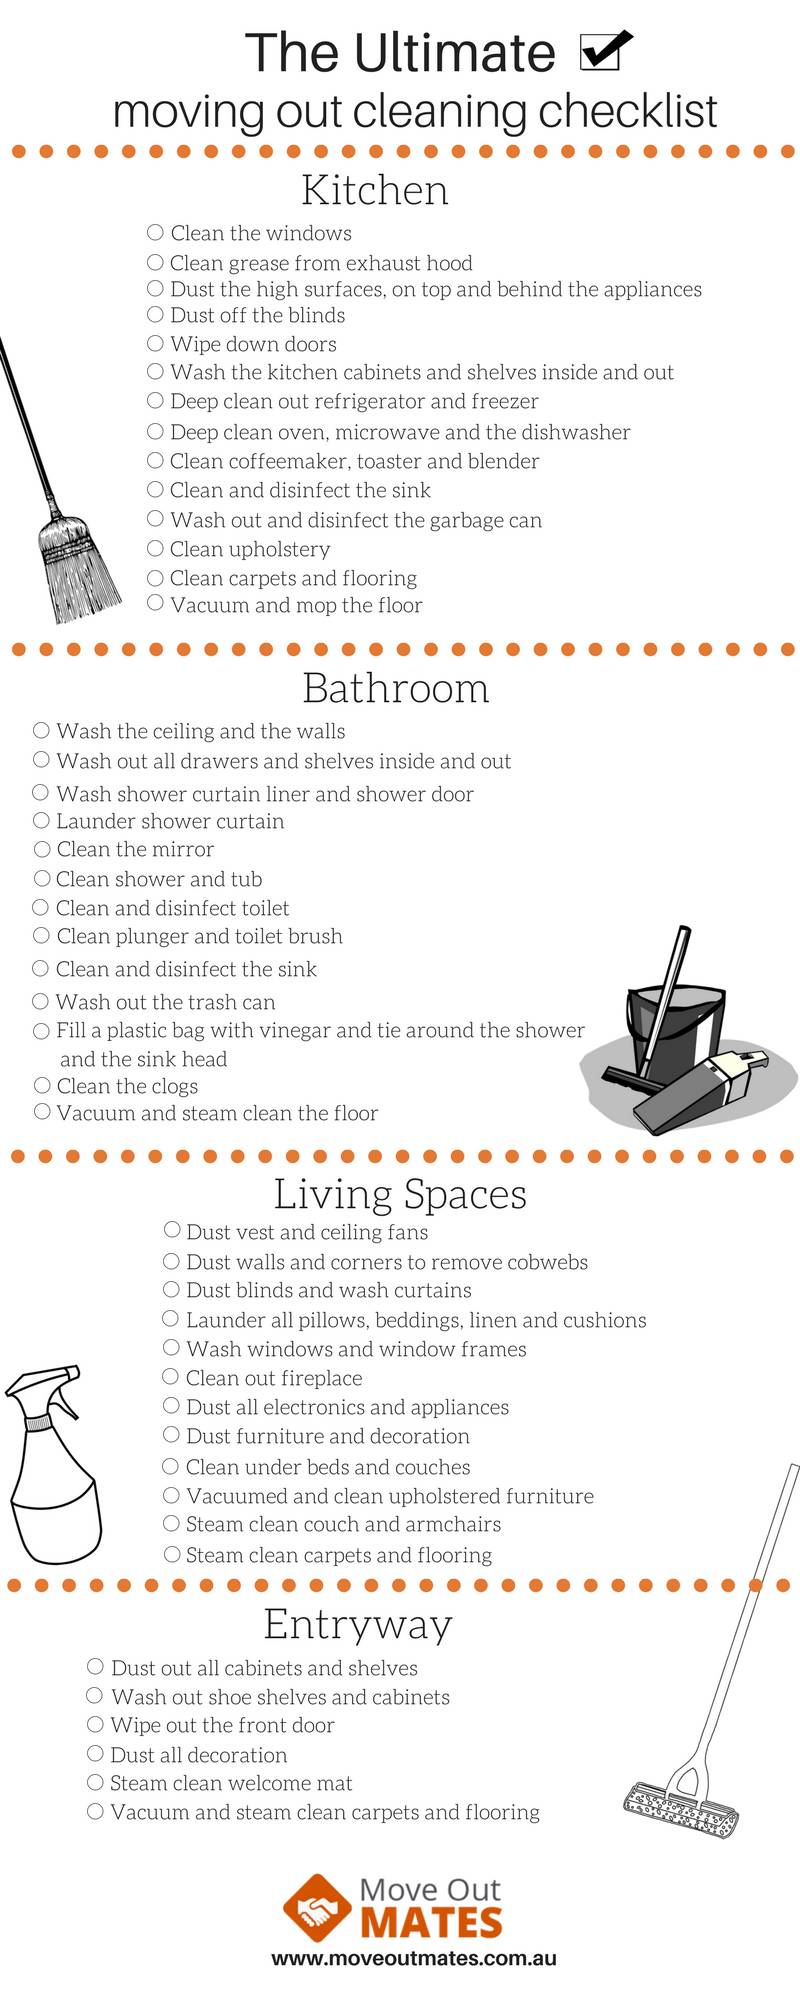 Move Out Cleaning Checklist Template